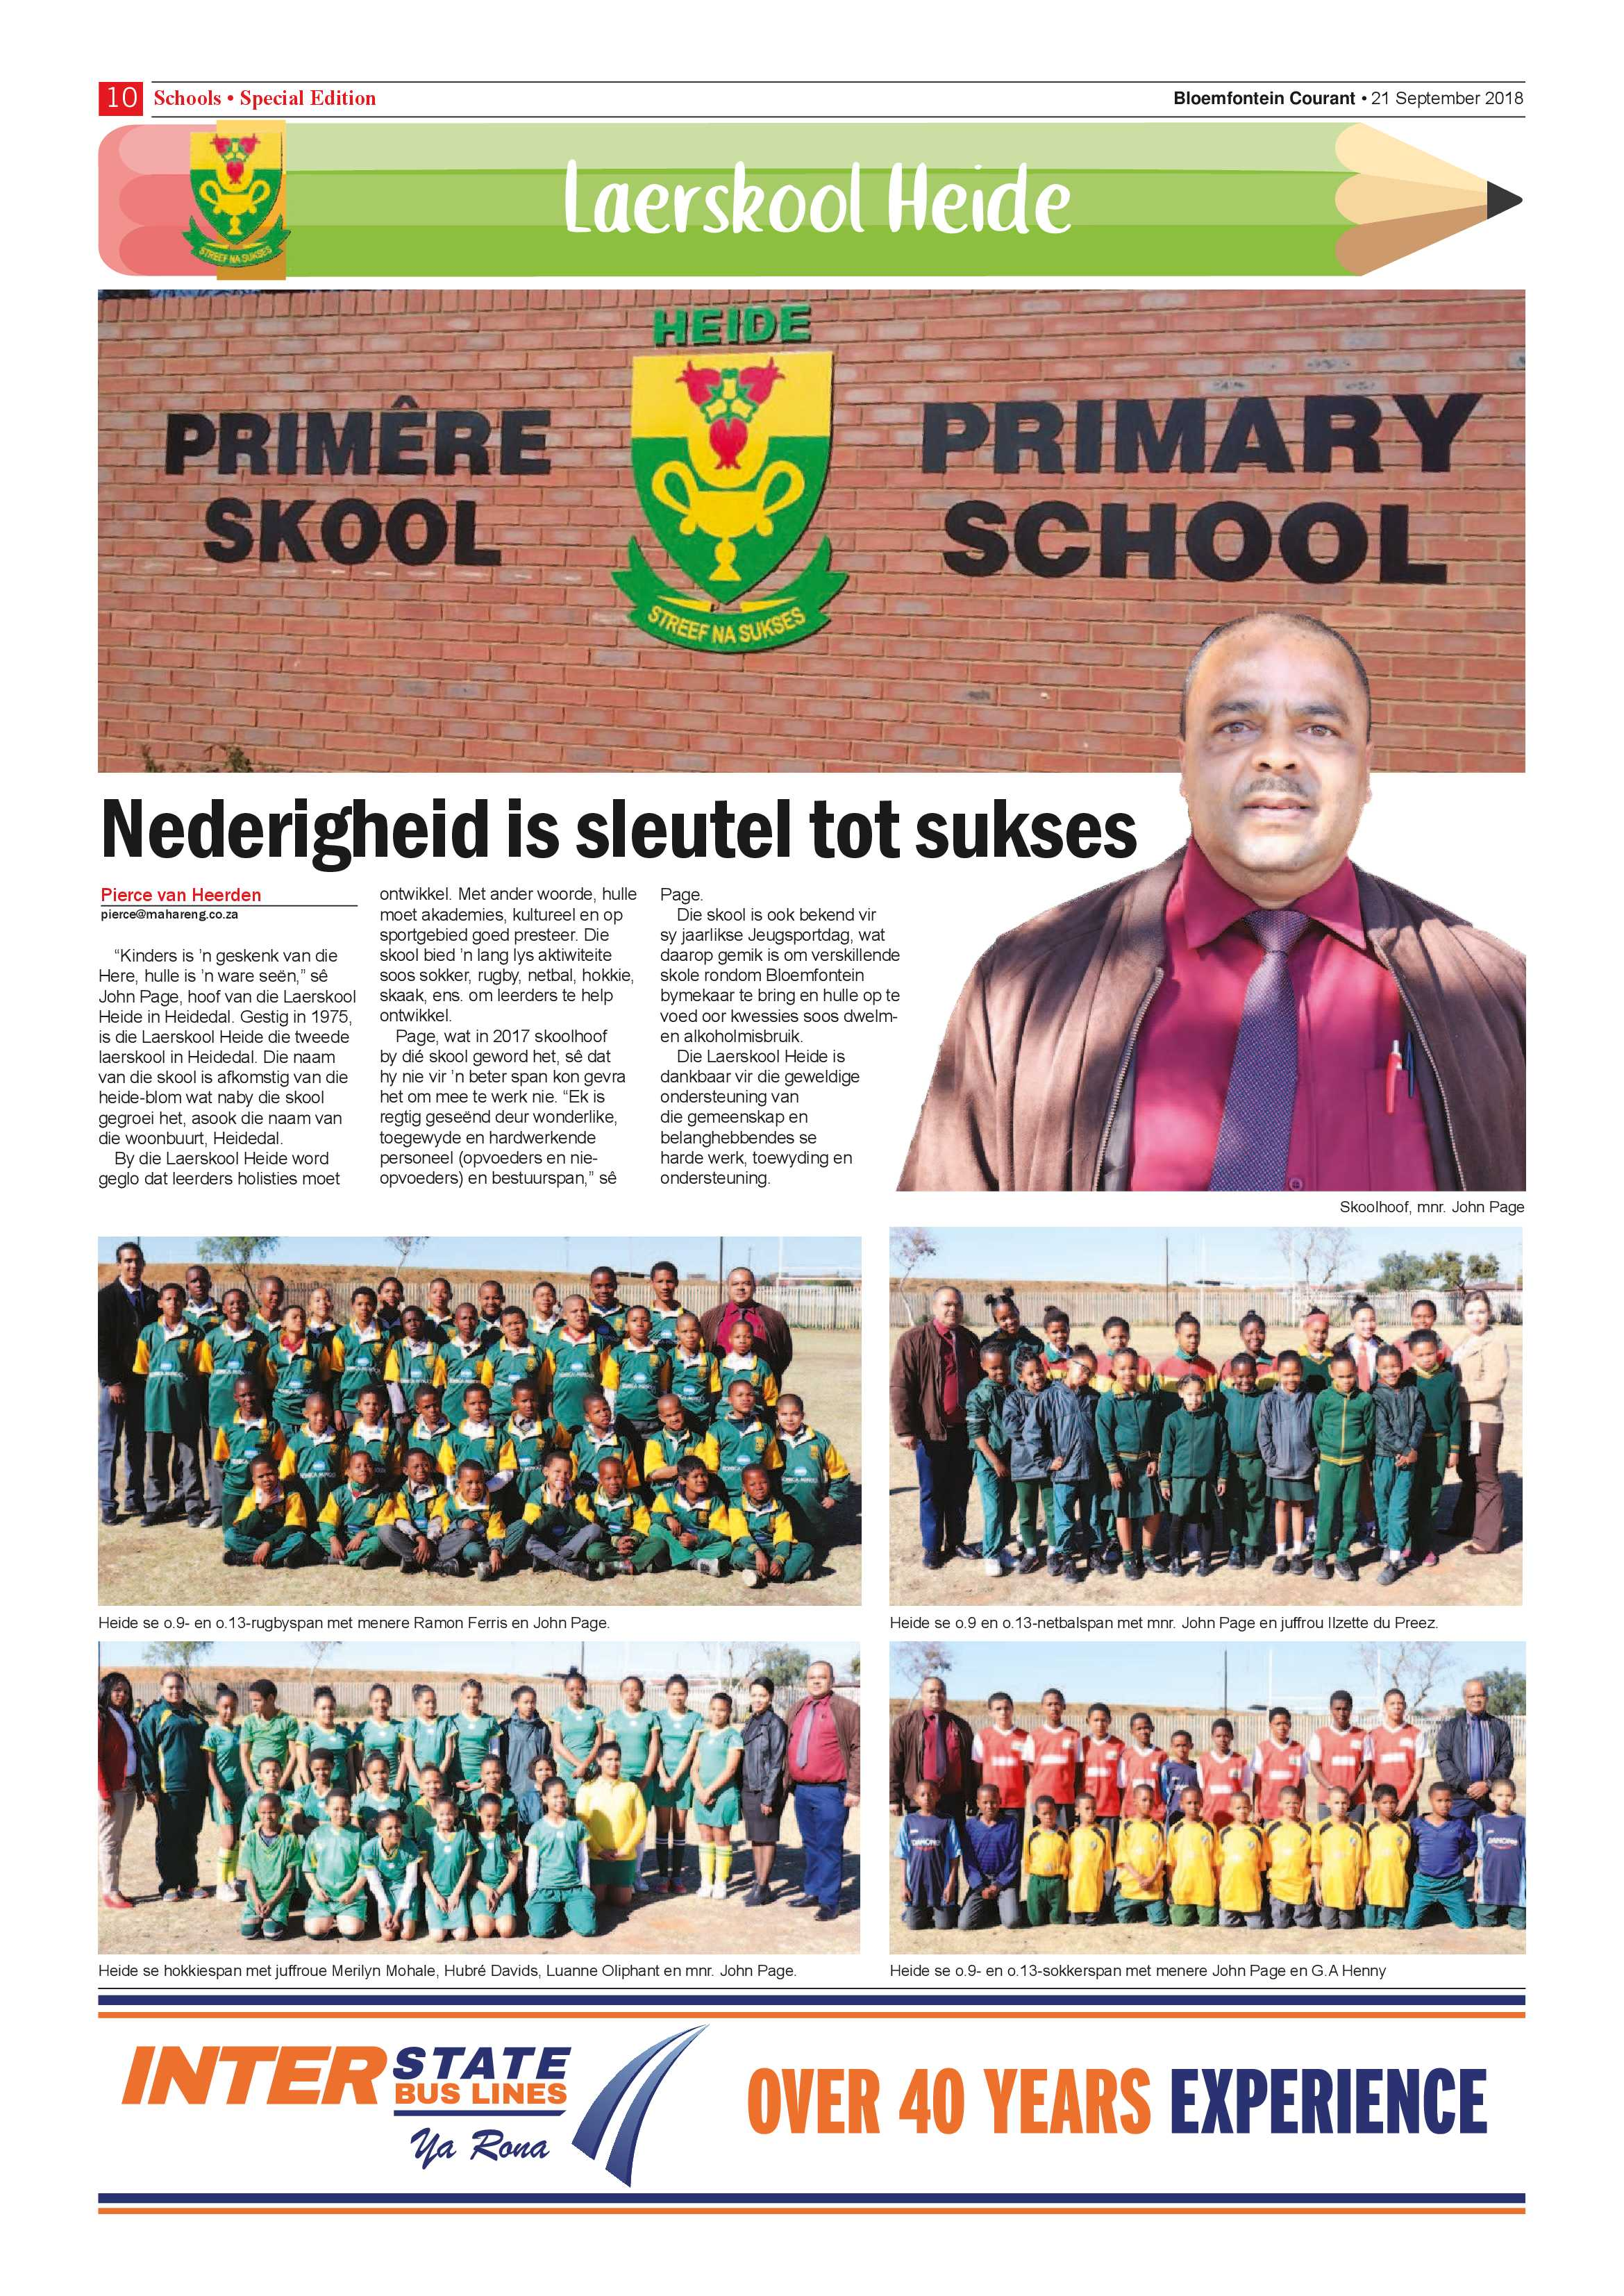 courant-schools-edition-20-september-2018-epapers-page-9